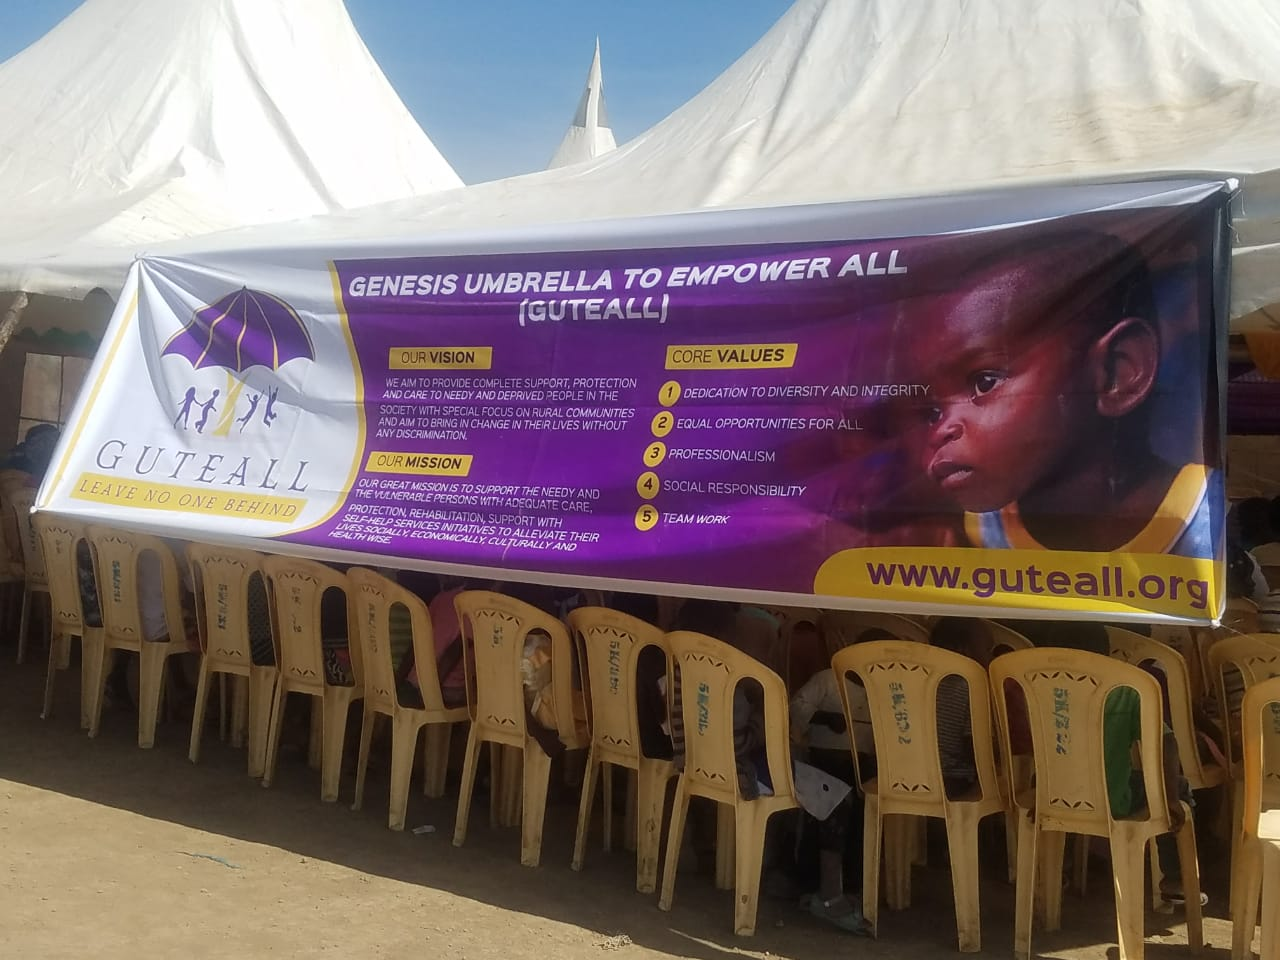 Genesis Umbrella to Empower All 10 - Guteall Medical Camp November 9, 2018